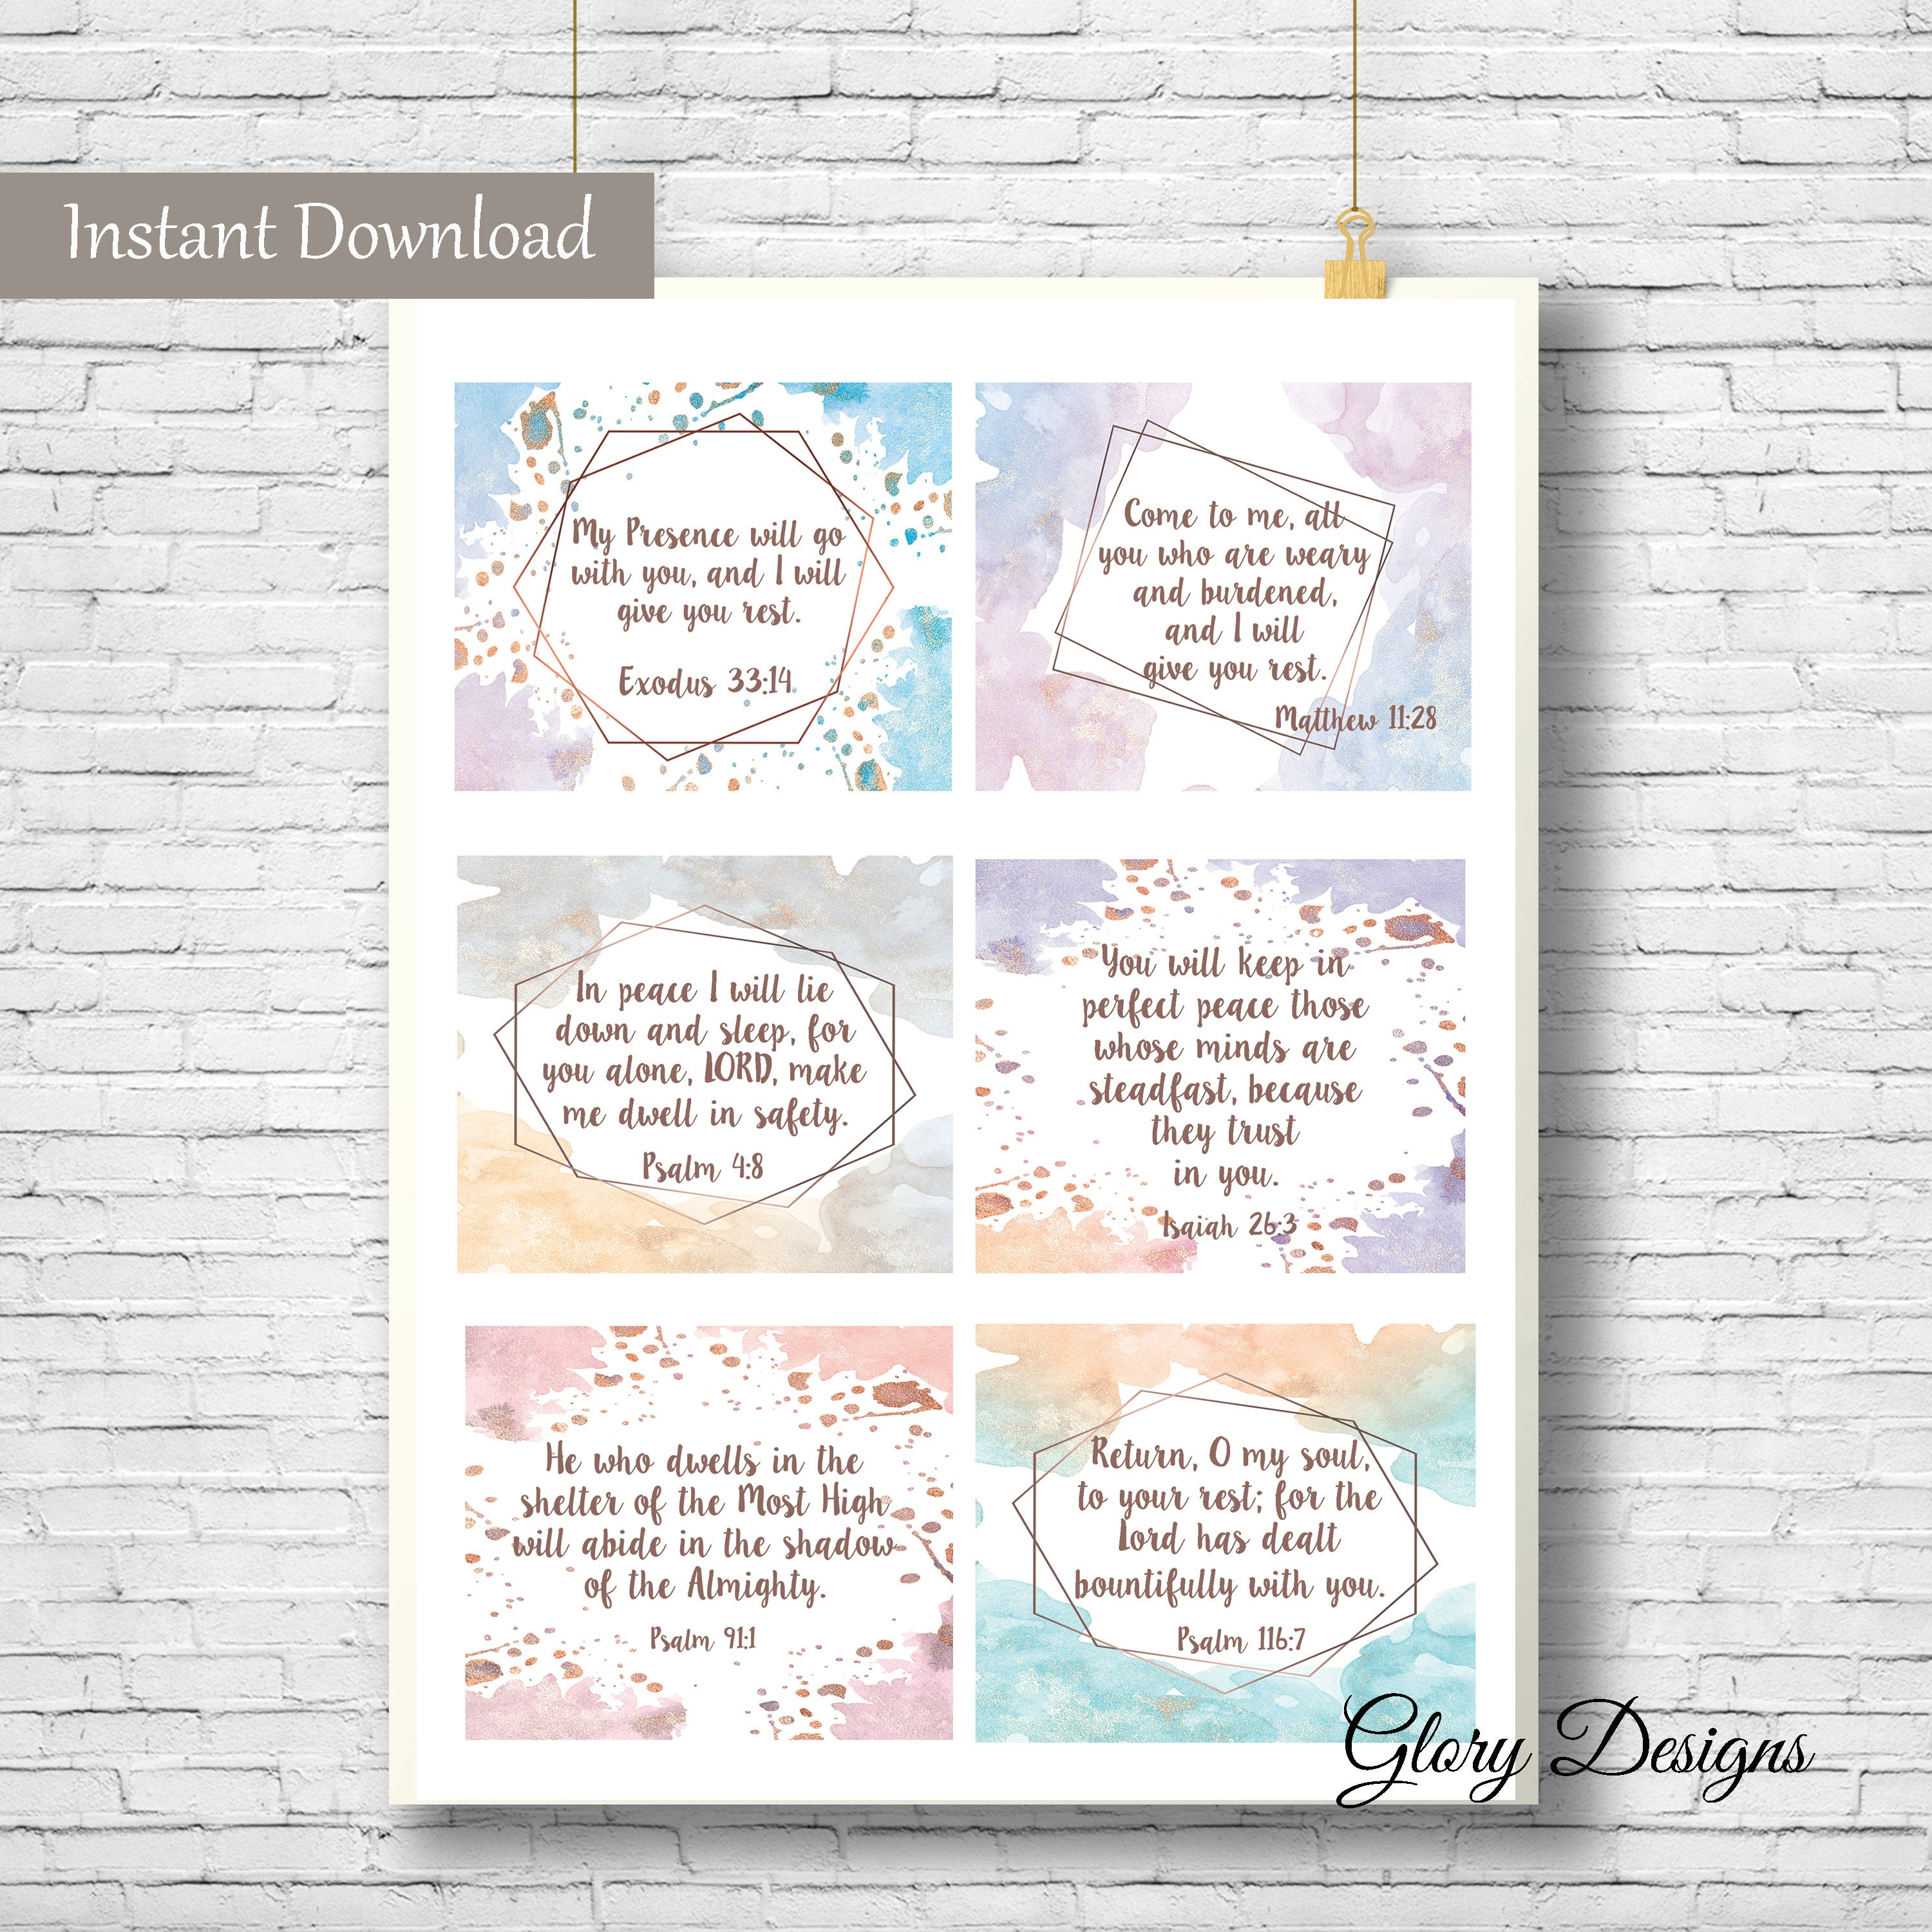 Printable Prayer Cards on Rest, Overcoming anxiety, Inspirational cards,  Instant download, declaration cards, prayer cards, daily prayer